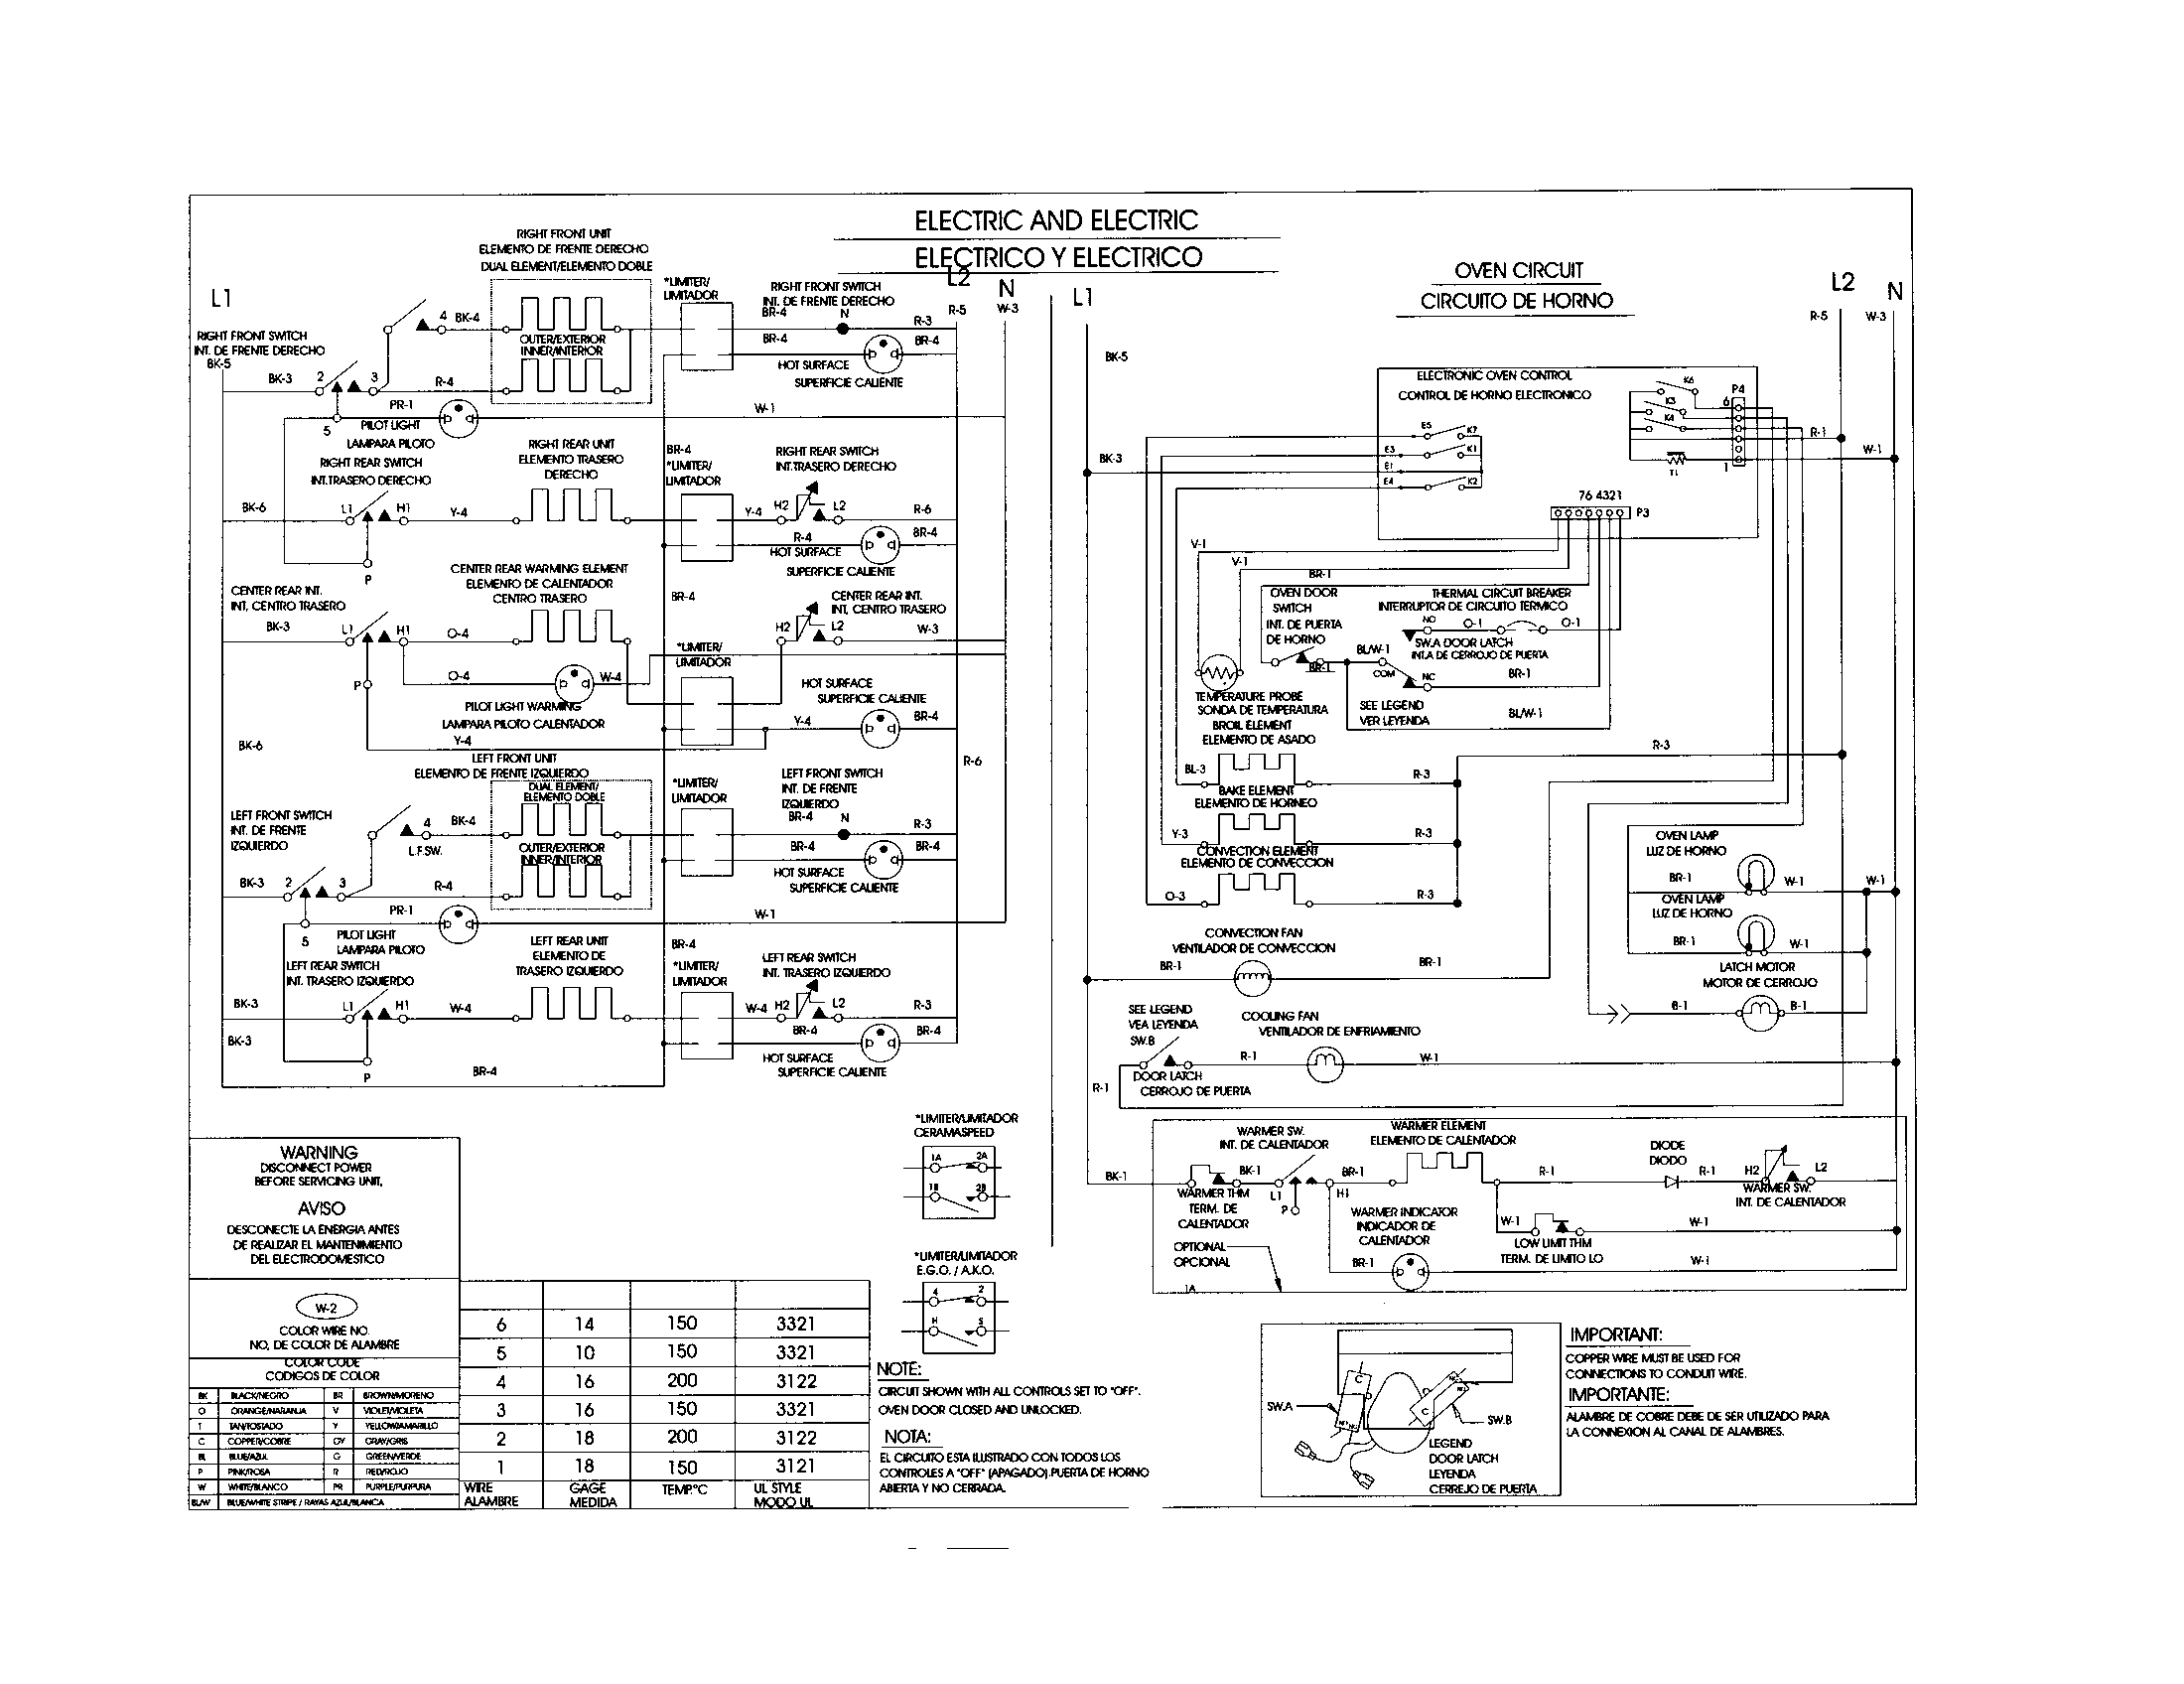 kenmore dishwasher wiring diagram to wiring diagram parts with regard to kenmore elite dishwasher 665 parts diagram which kenmore part 692033 wiring diagram which wiring diagrams  at soozxer.org